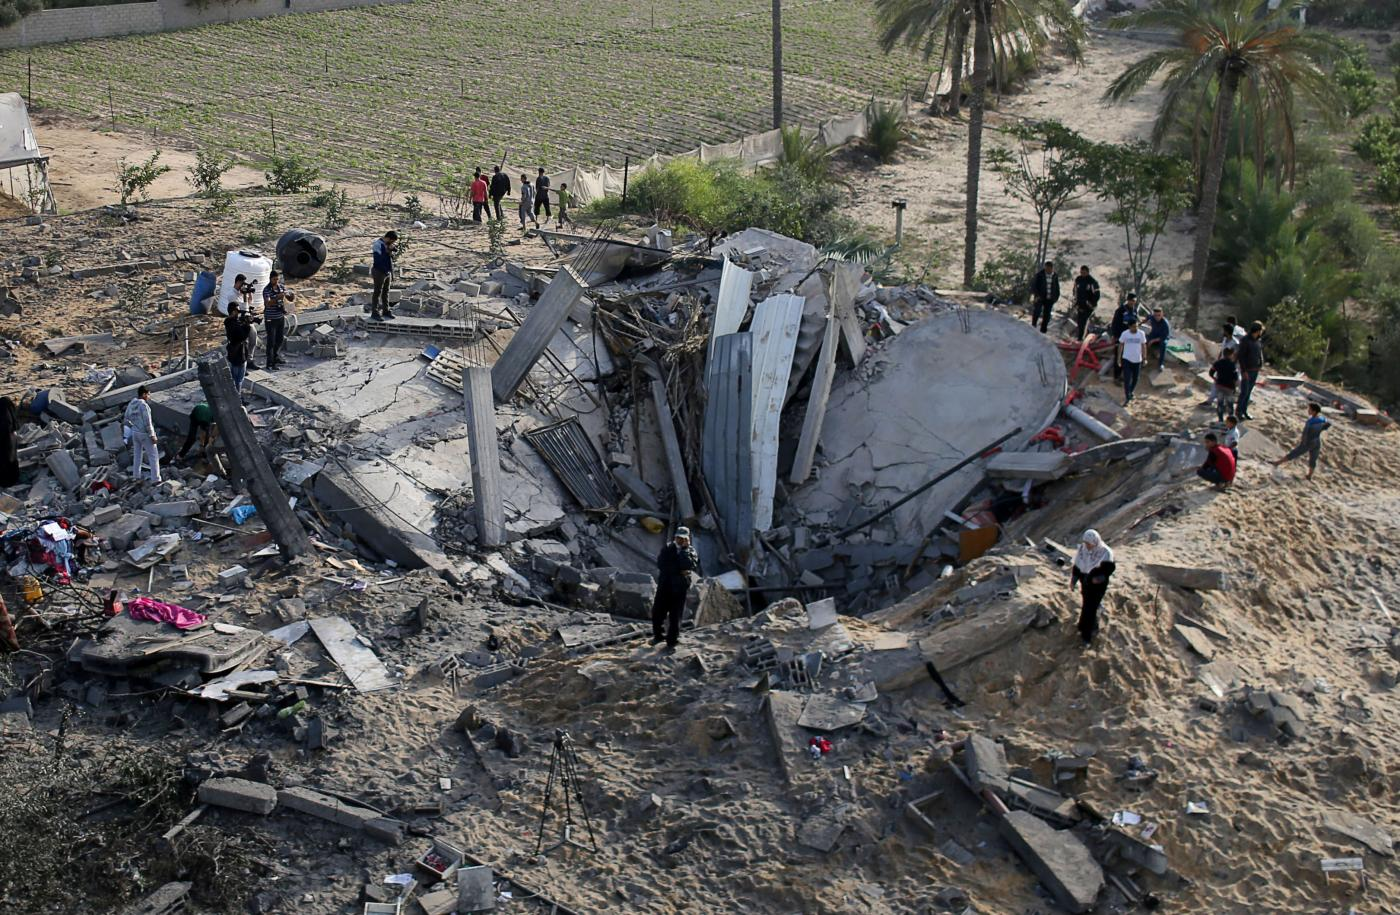 Palestinian death toll rises to 16 as Israel continues air strikes against Gaza